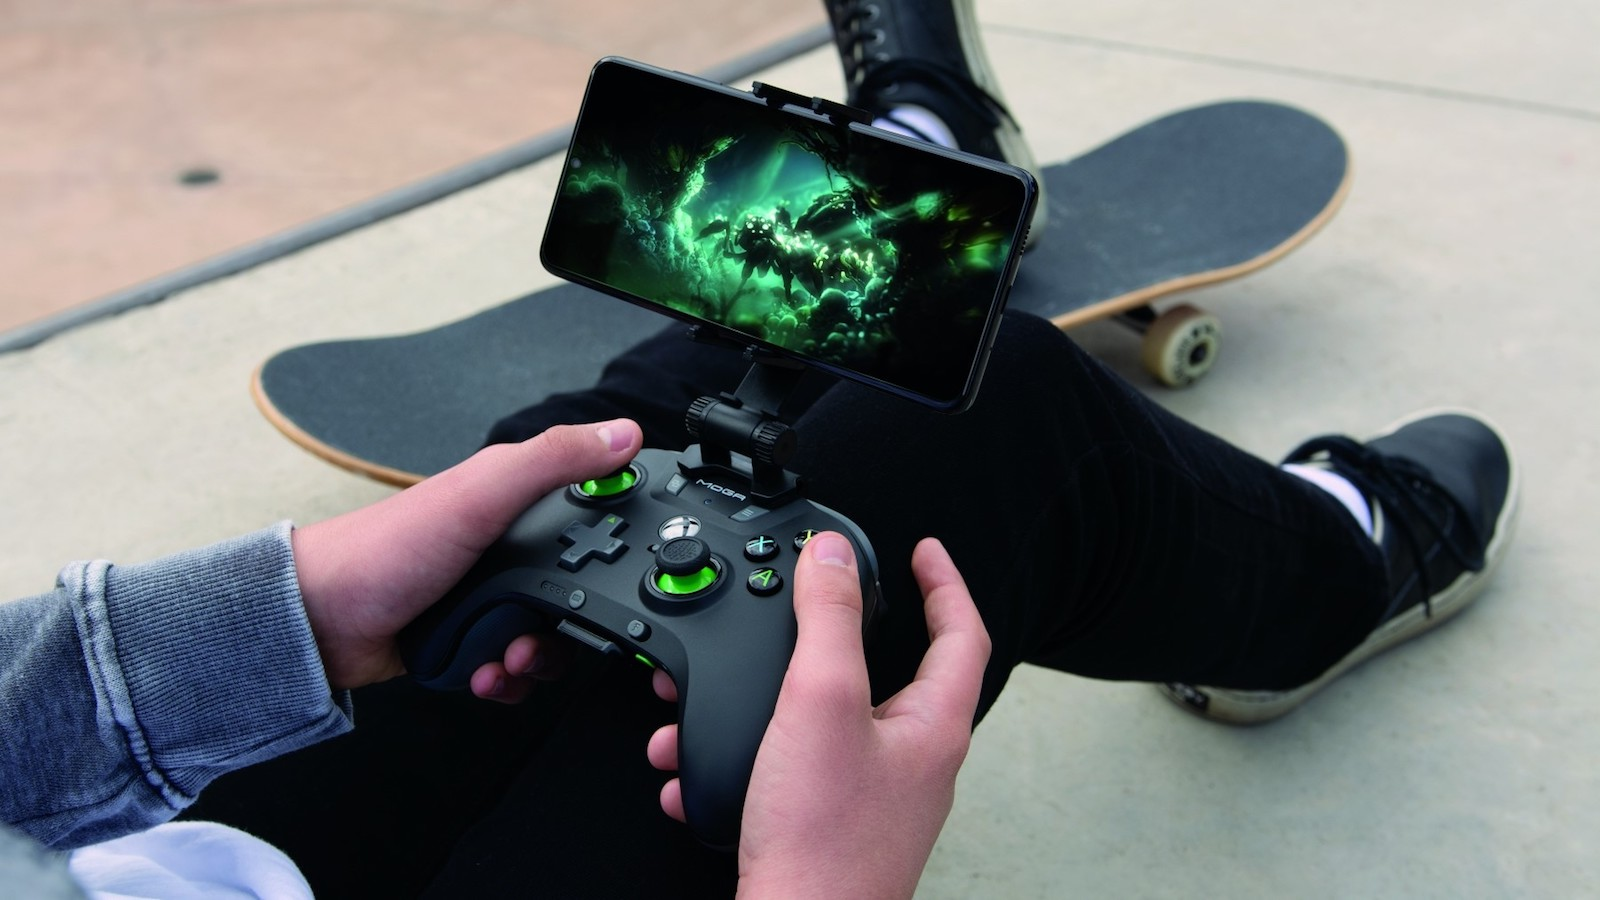 This PowerA gaming remote lets you play games on your phone